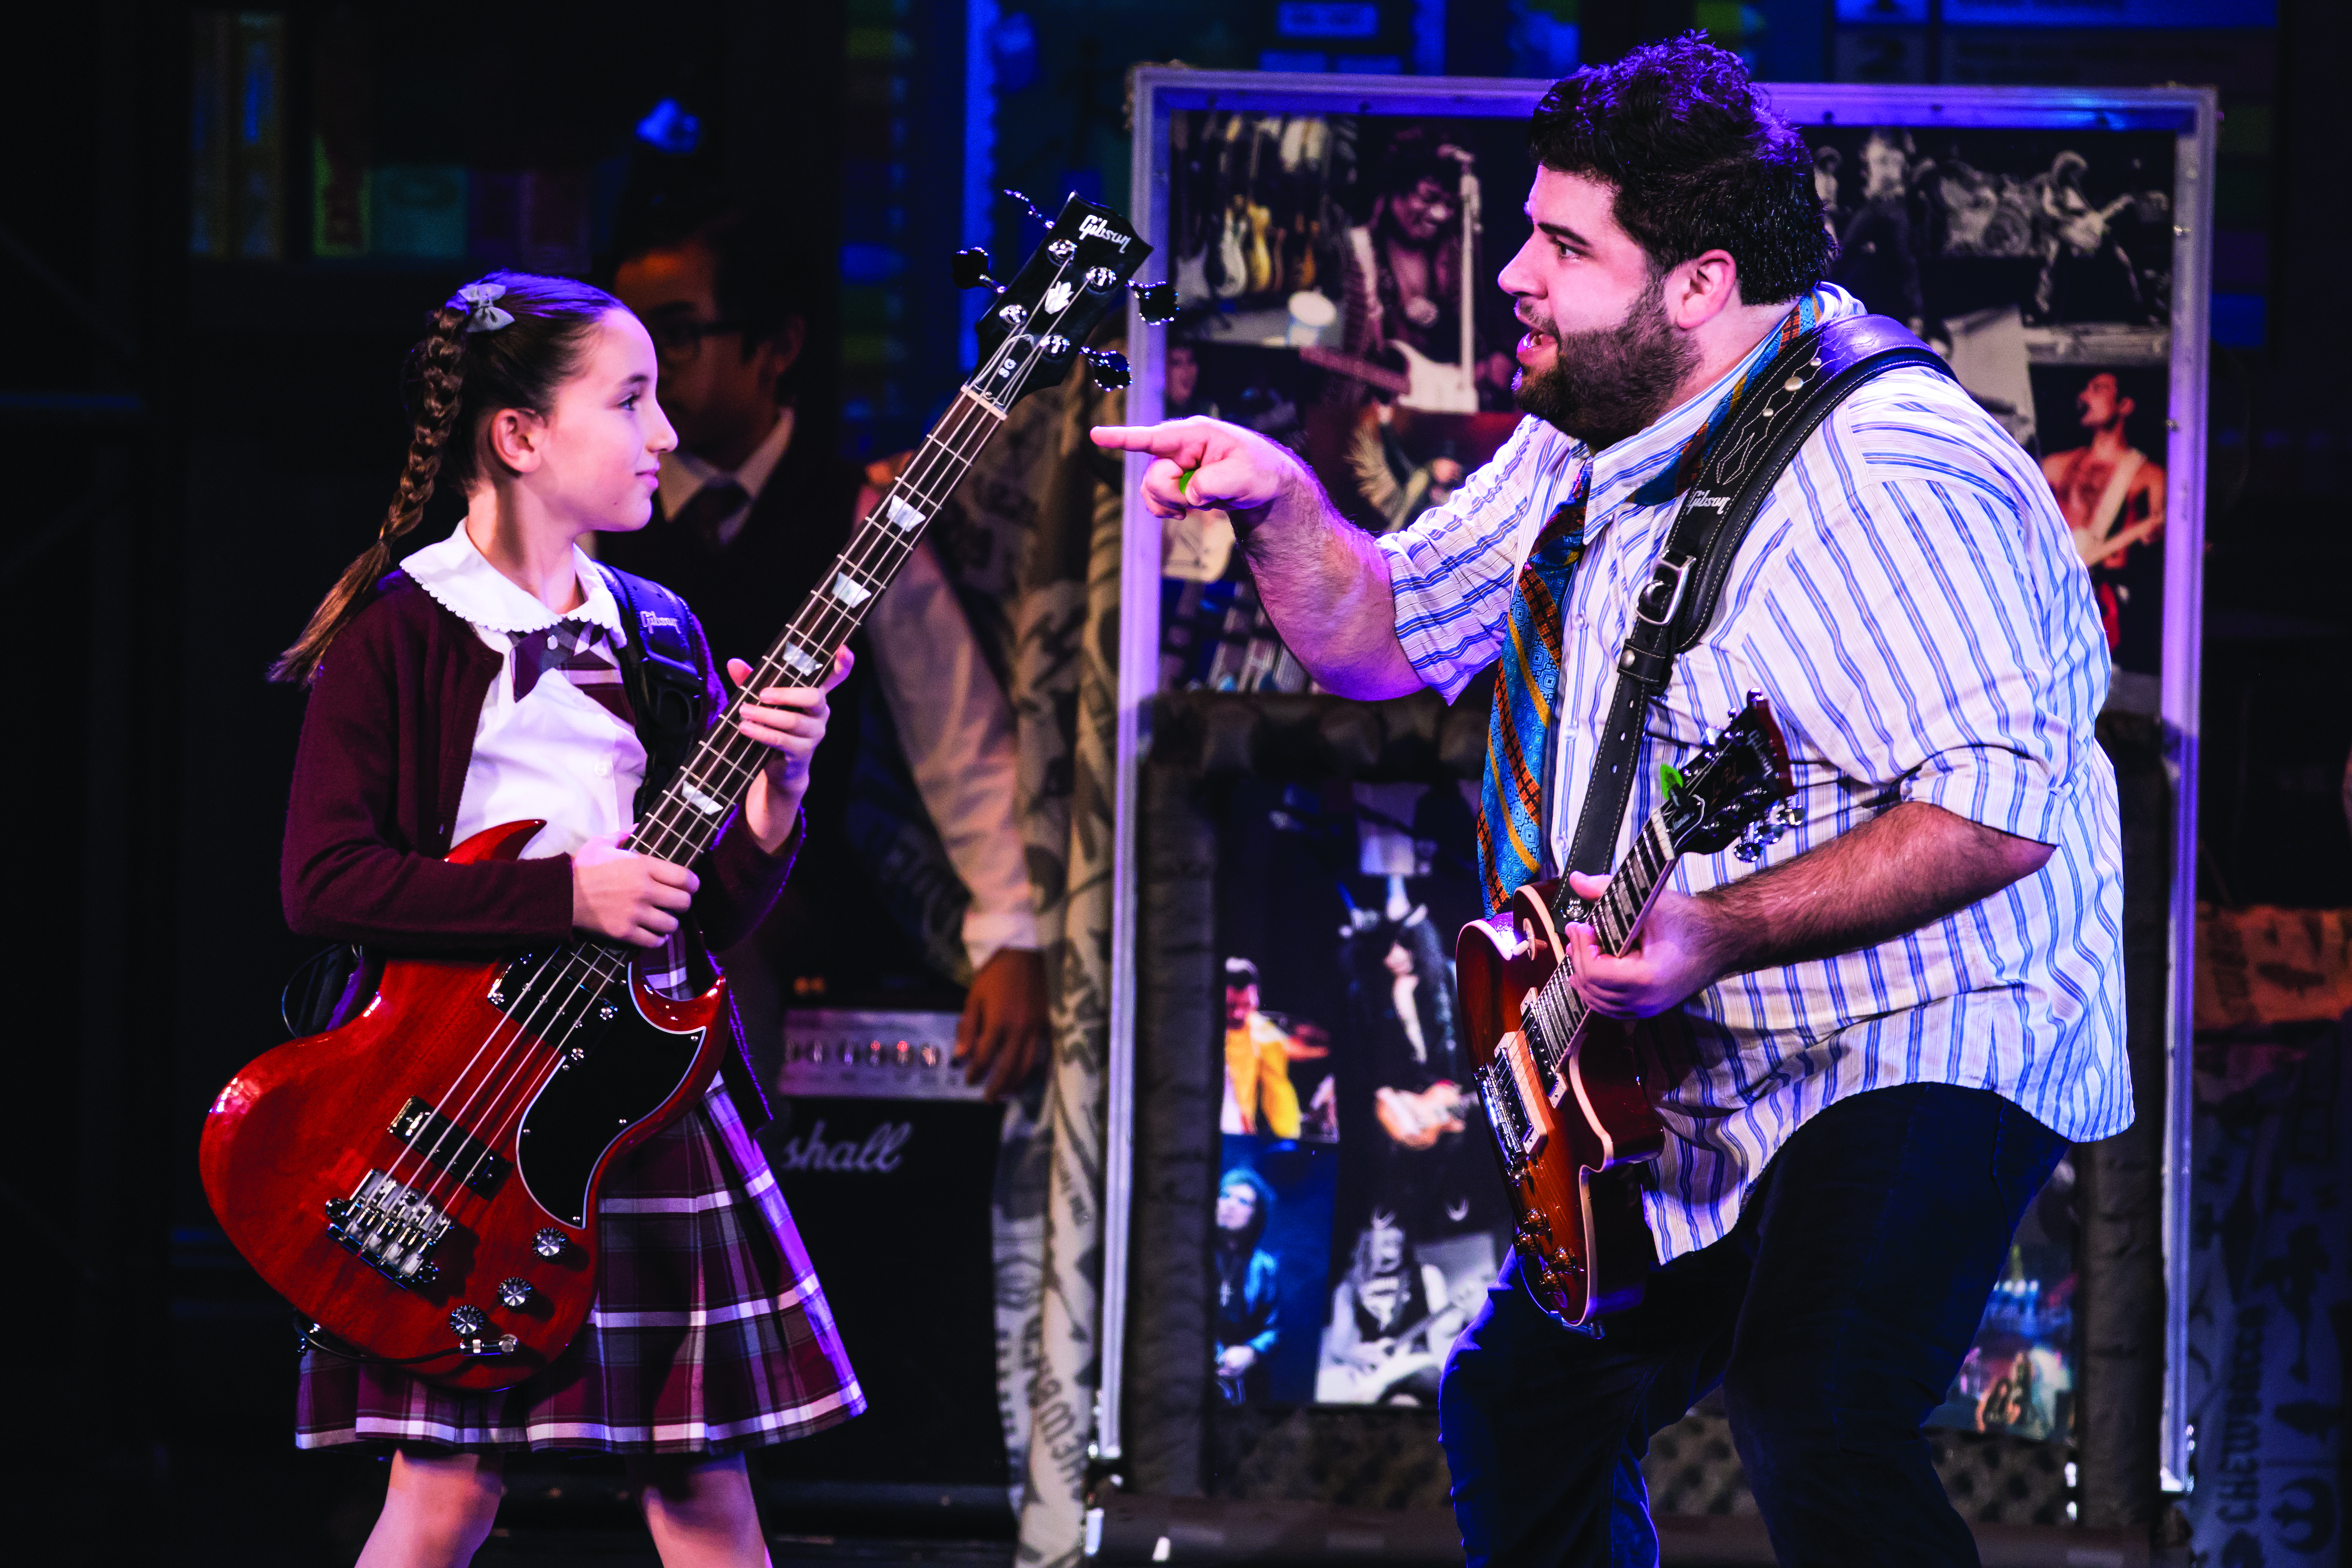 Theodora Silverman and Rob Colletti in School of Rock